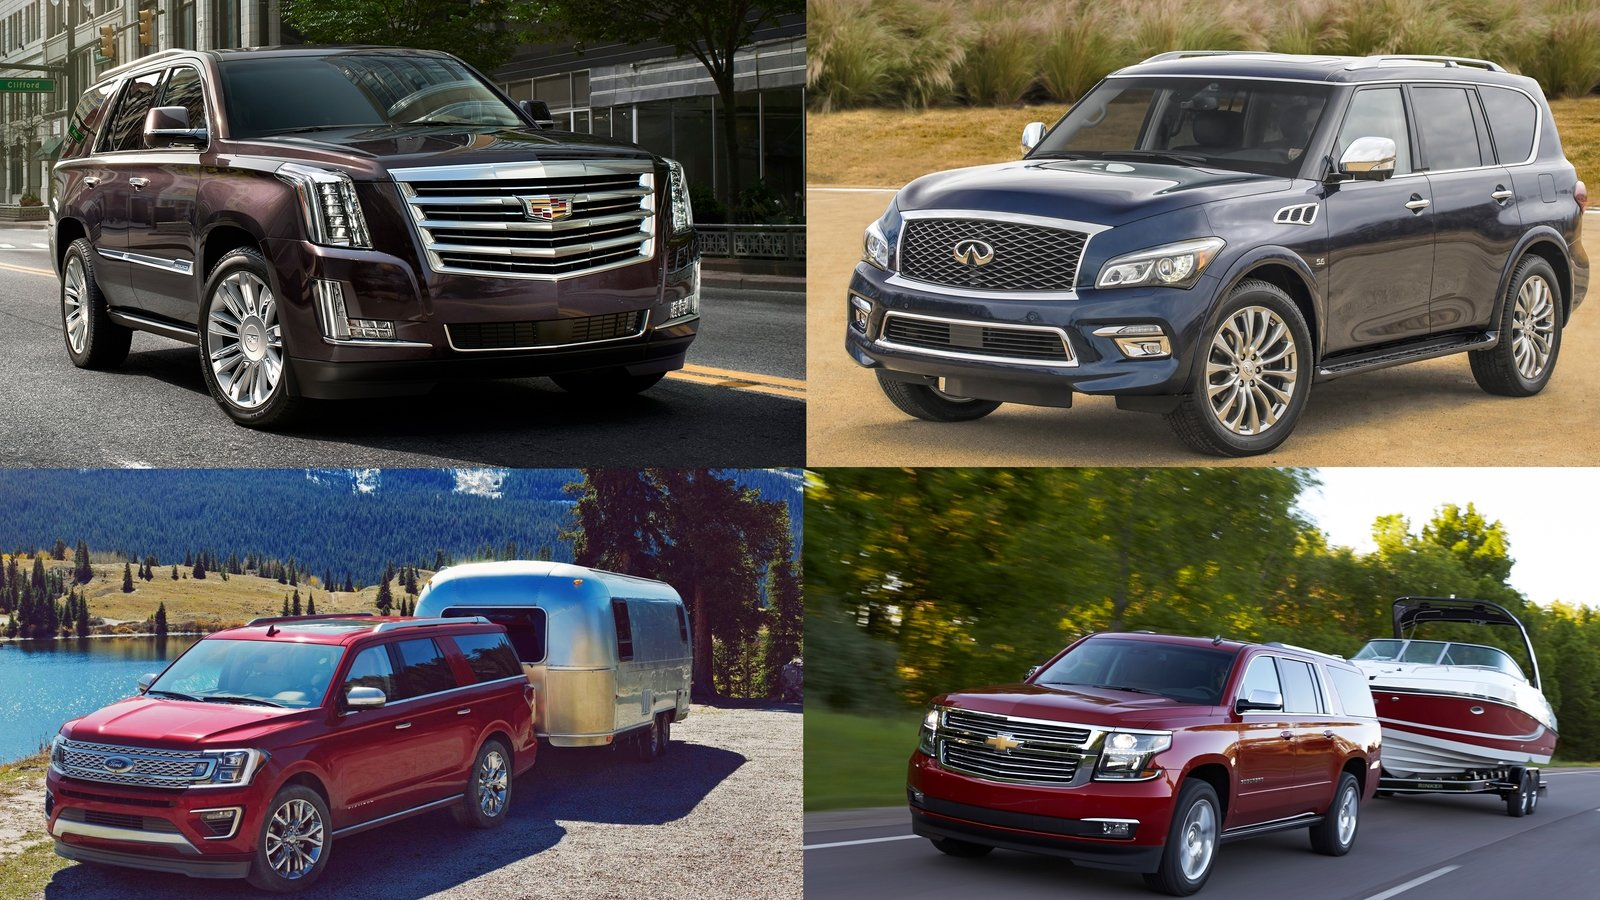 Nissan Armada Towing Capacity >> Towing Capacity: 7 SUVs From 2016 That Can Tow The Most ...